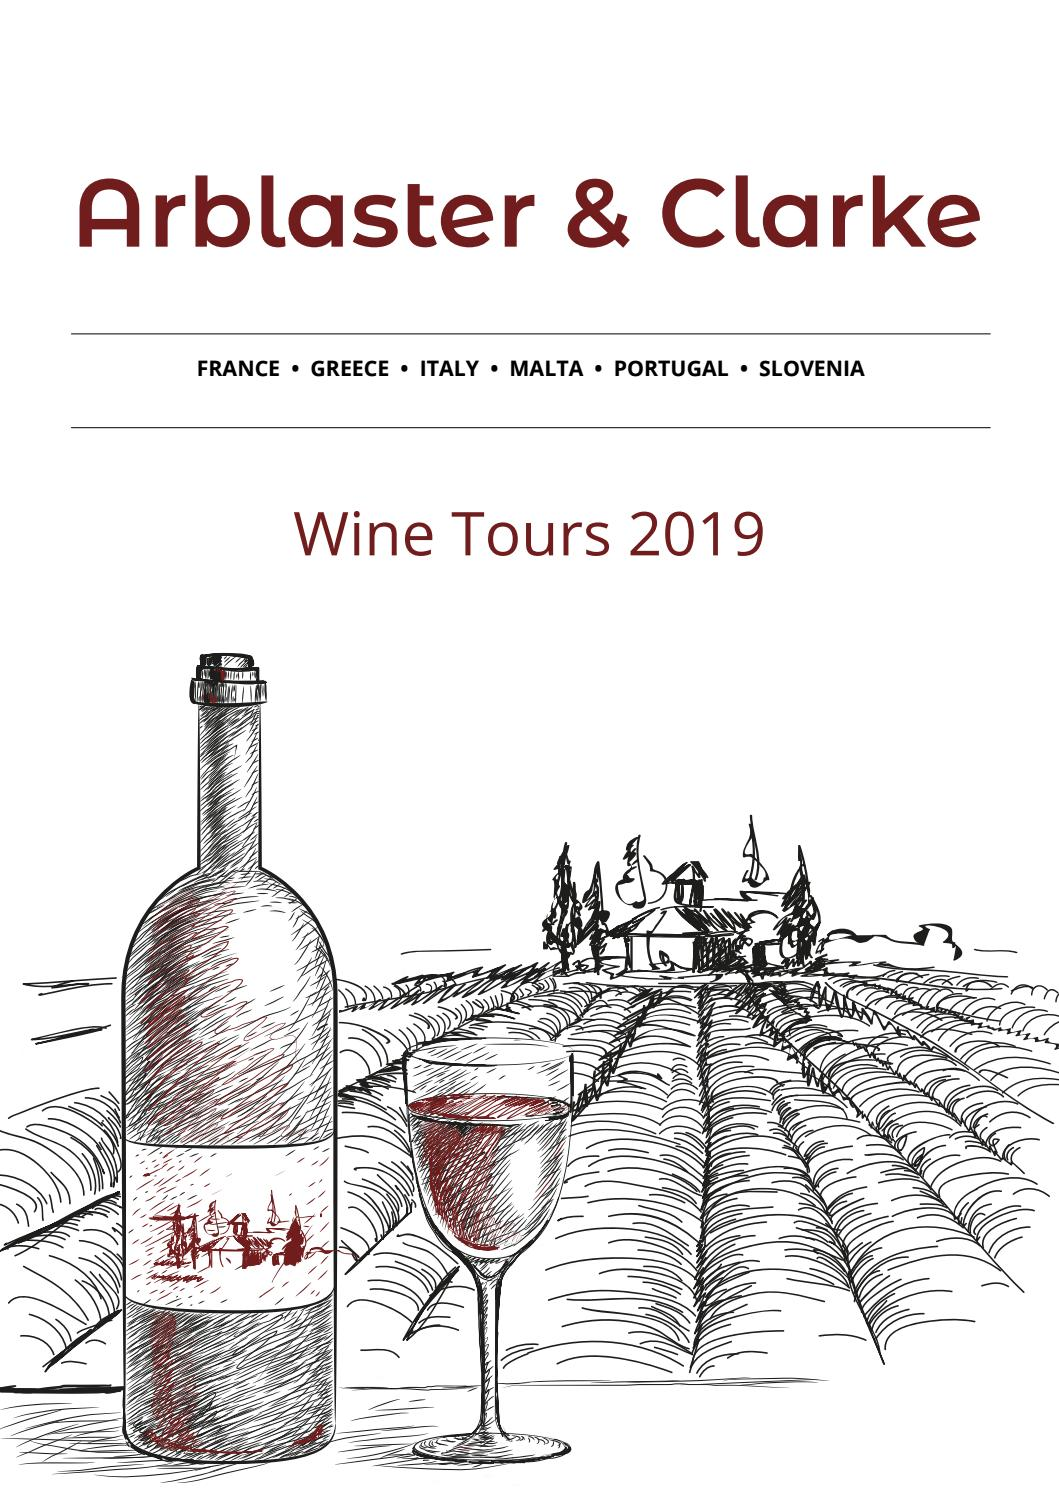 Arblaster Clarke 2019 Brochure By Specialist Journeys Issuu